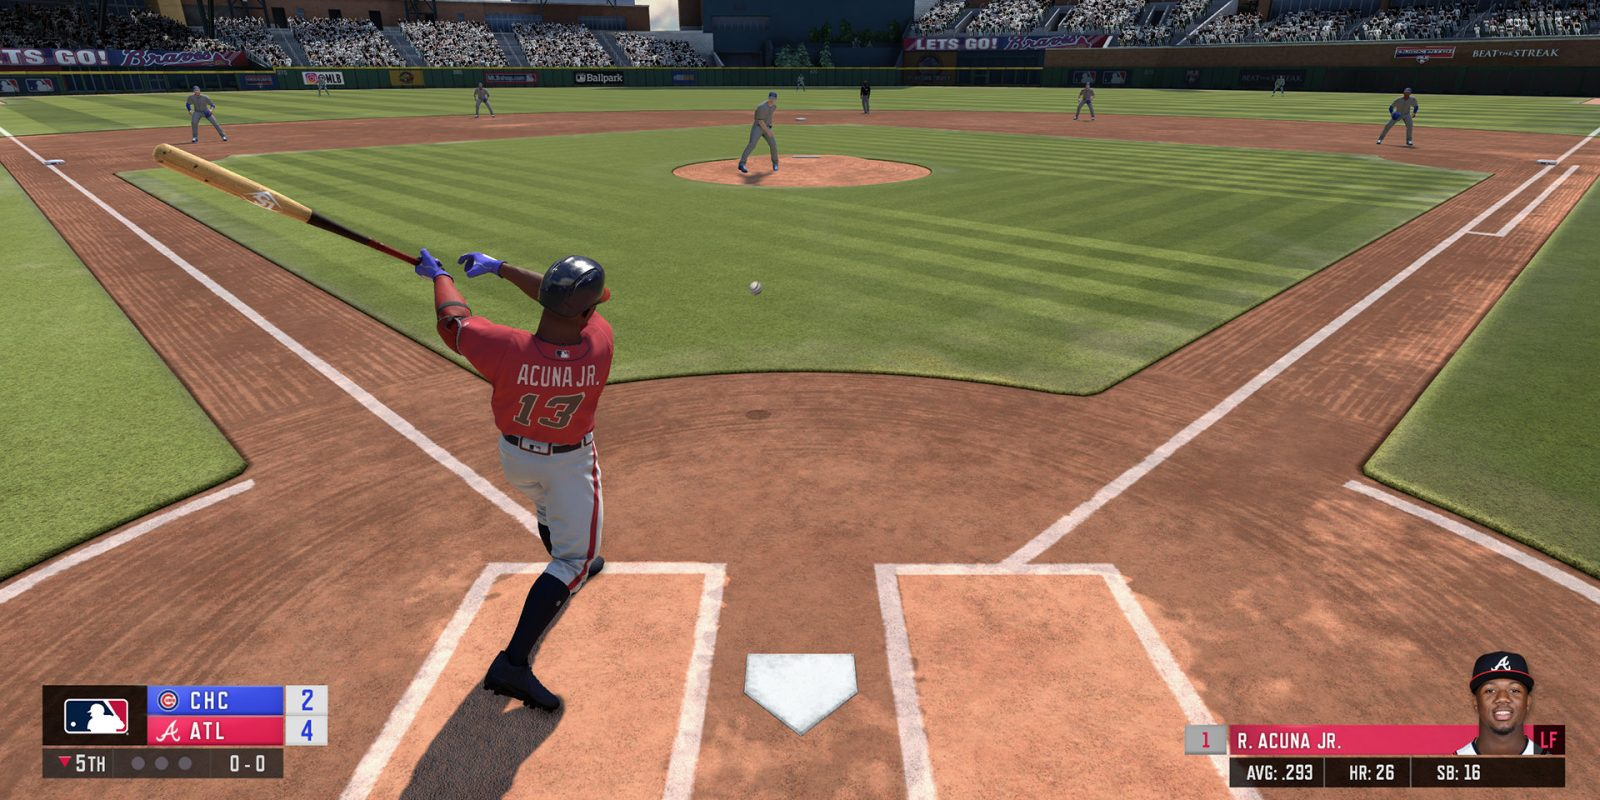 R.B.I. Baseball 19 for iOS hits its all-time lowest price ever at $2 (Reg. $7)